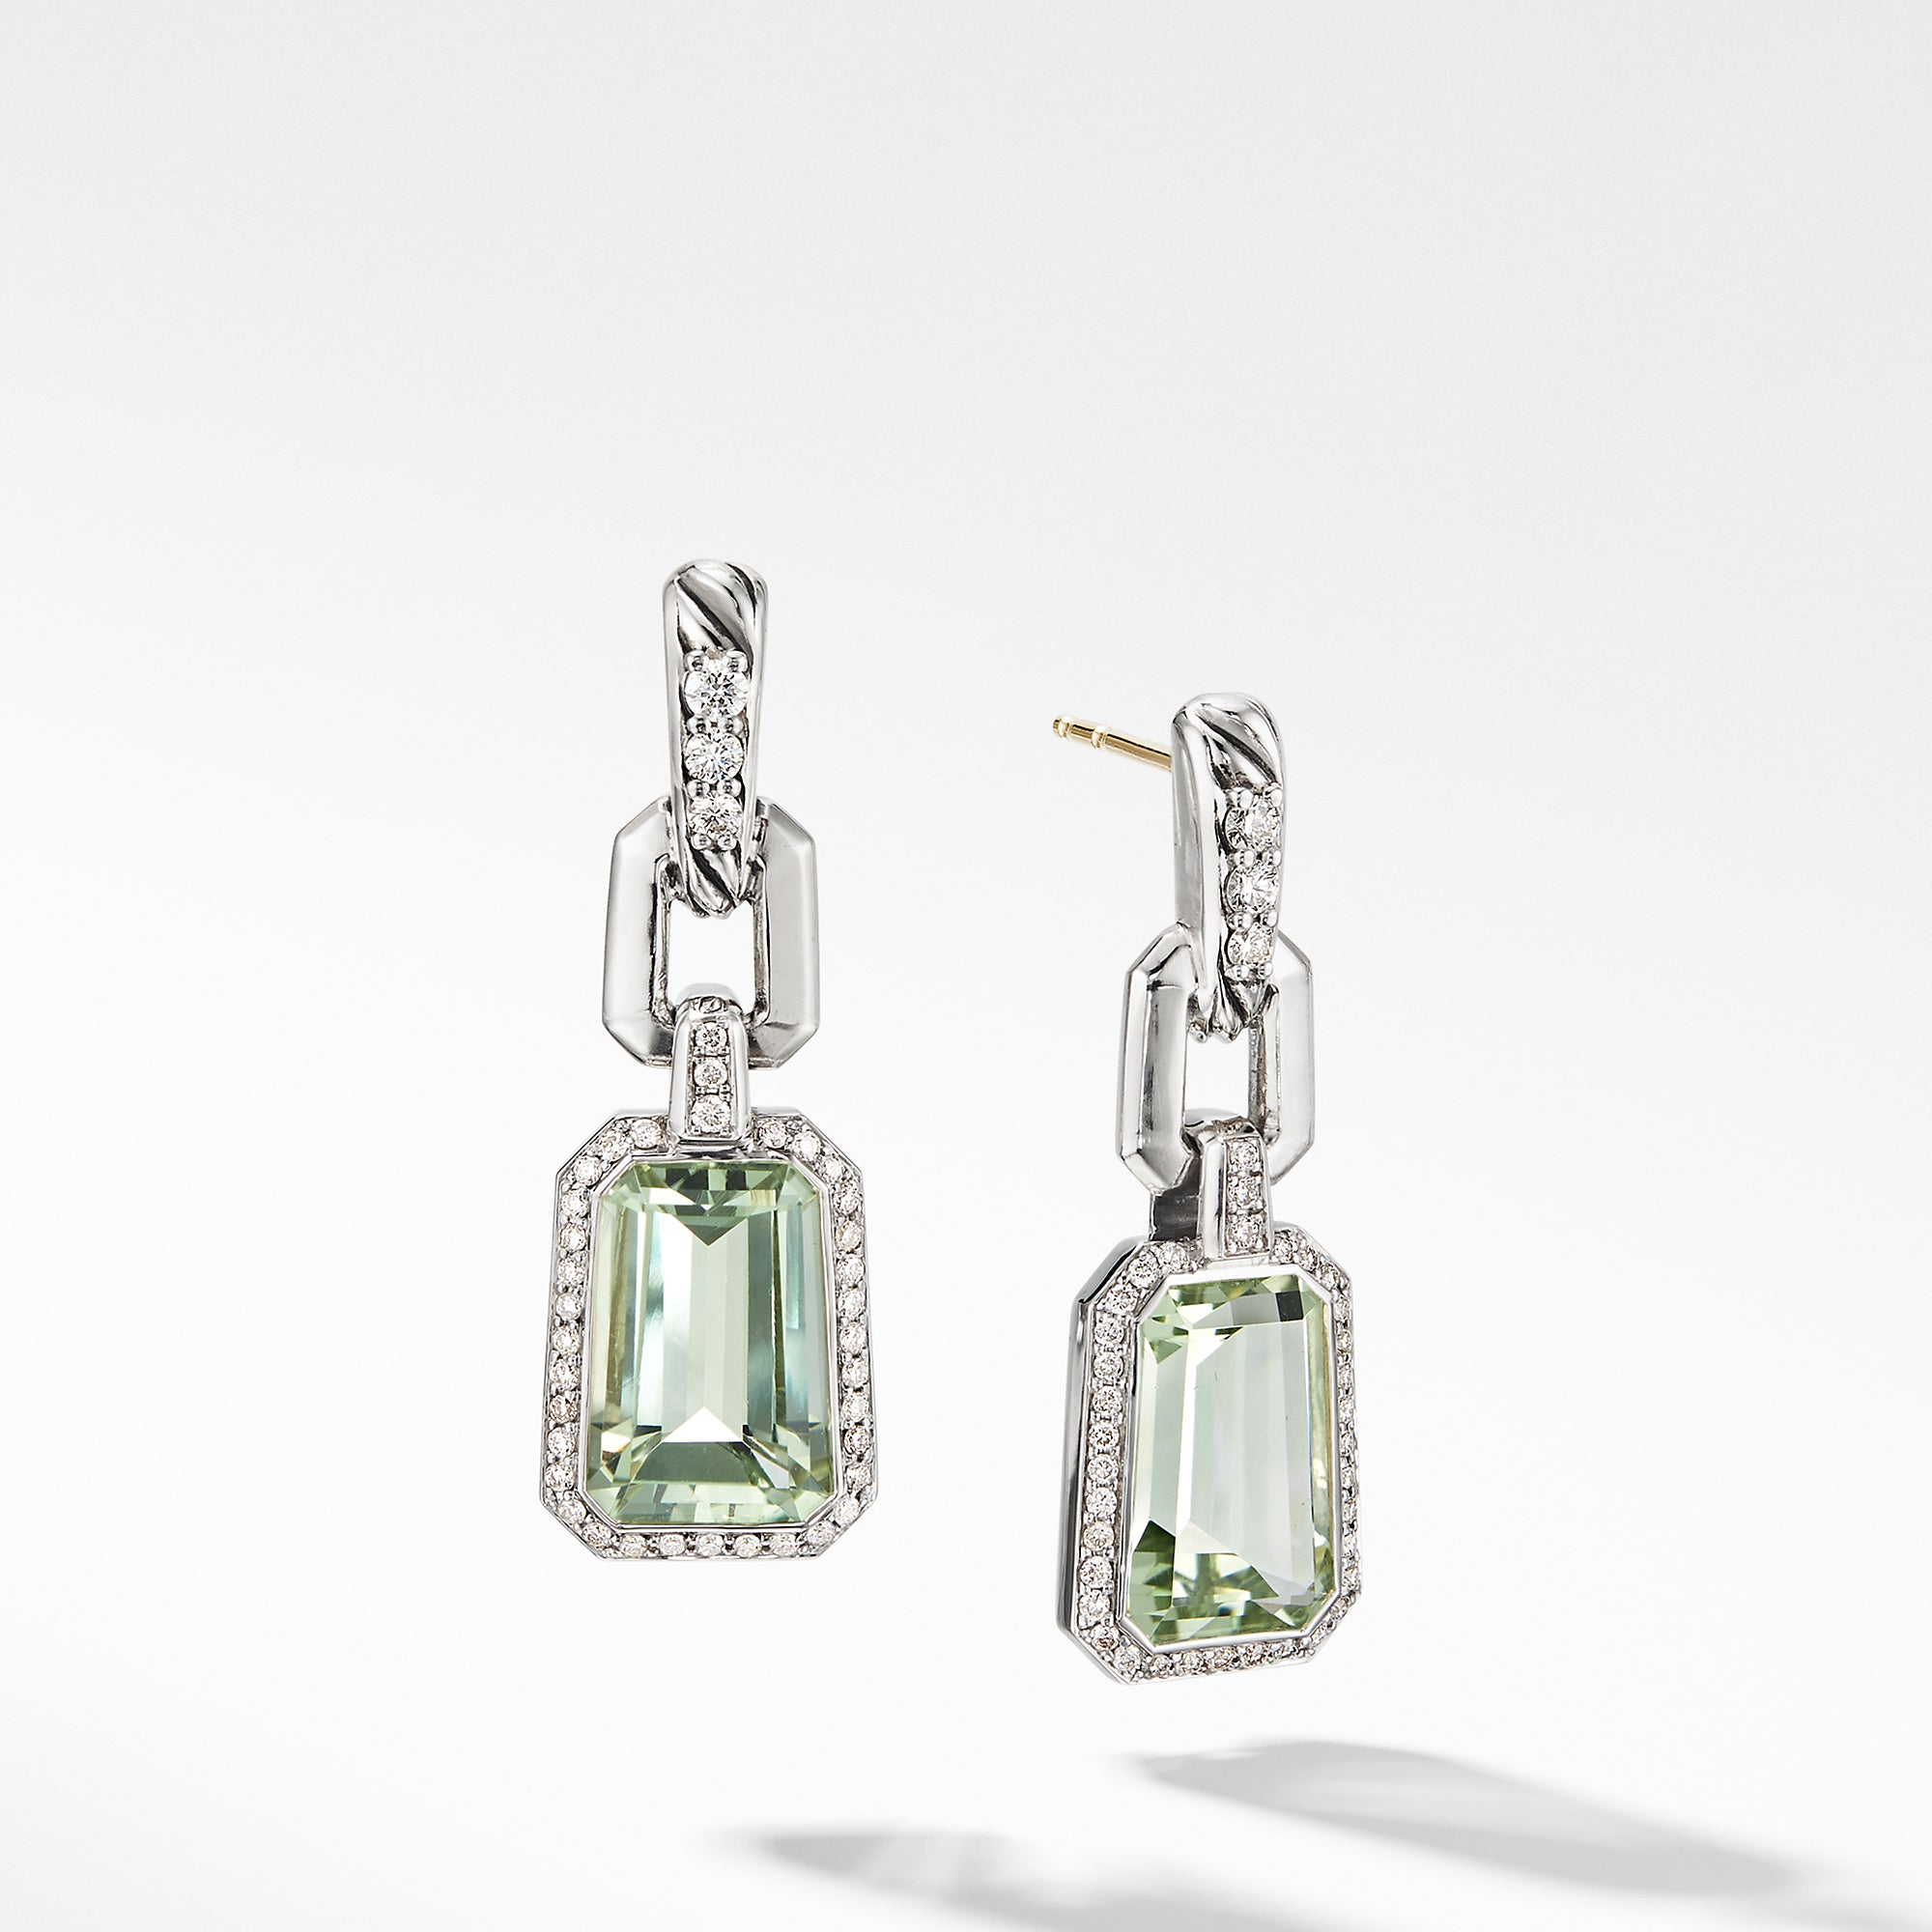 Stax Drop Earrings with Prasiolite and Diamonds